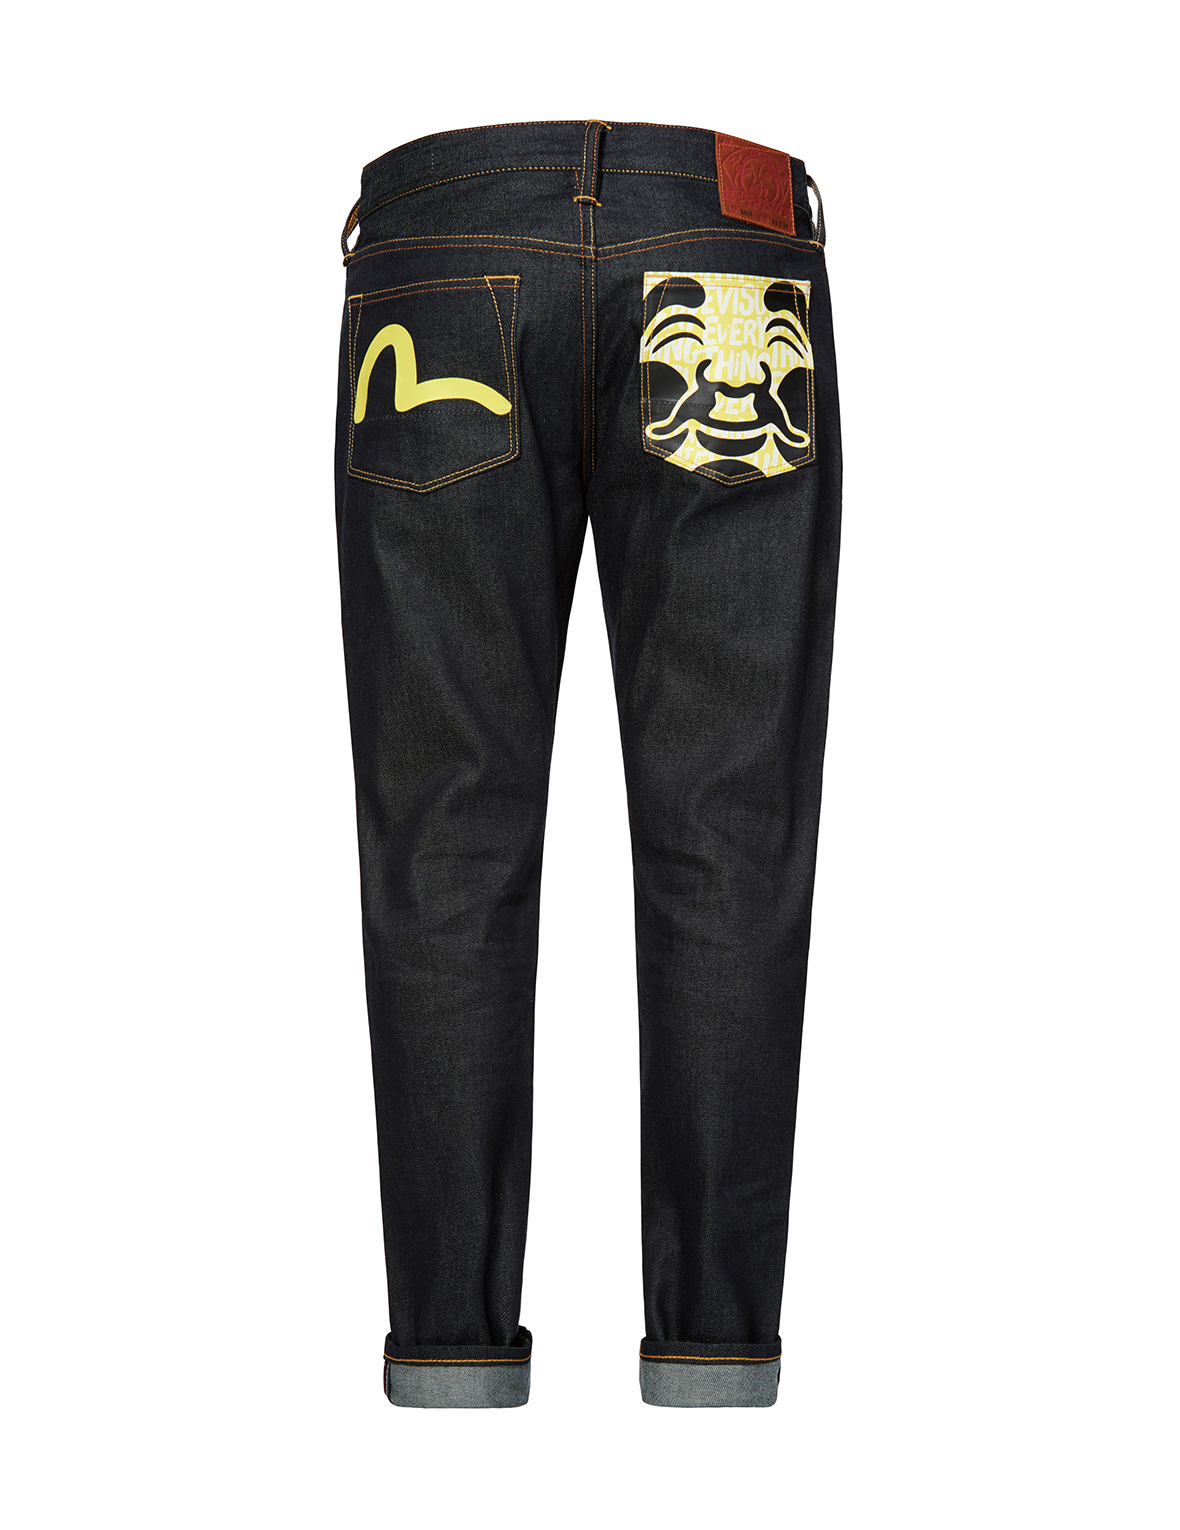 Allover Motto Godhead and Seagull Printed 2017 Carrot Fit Jeans